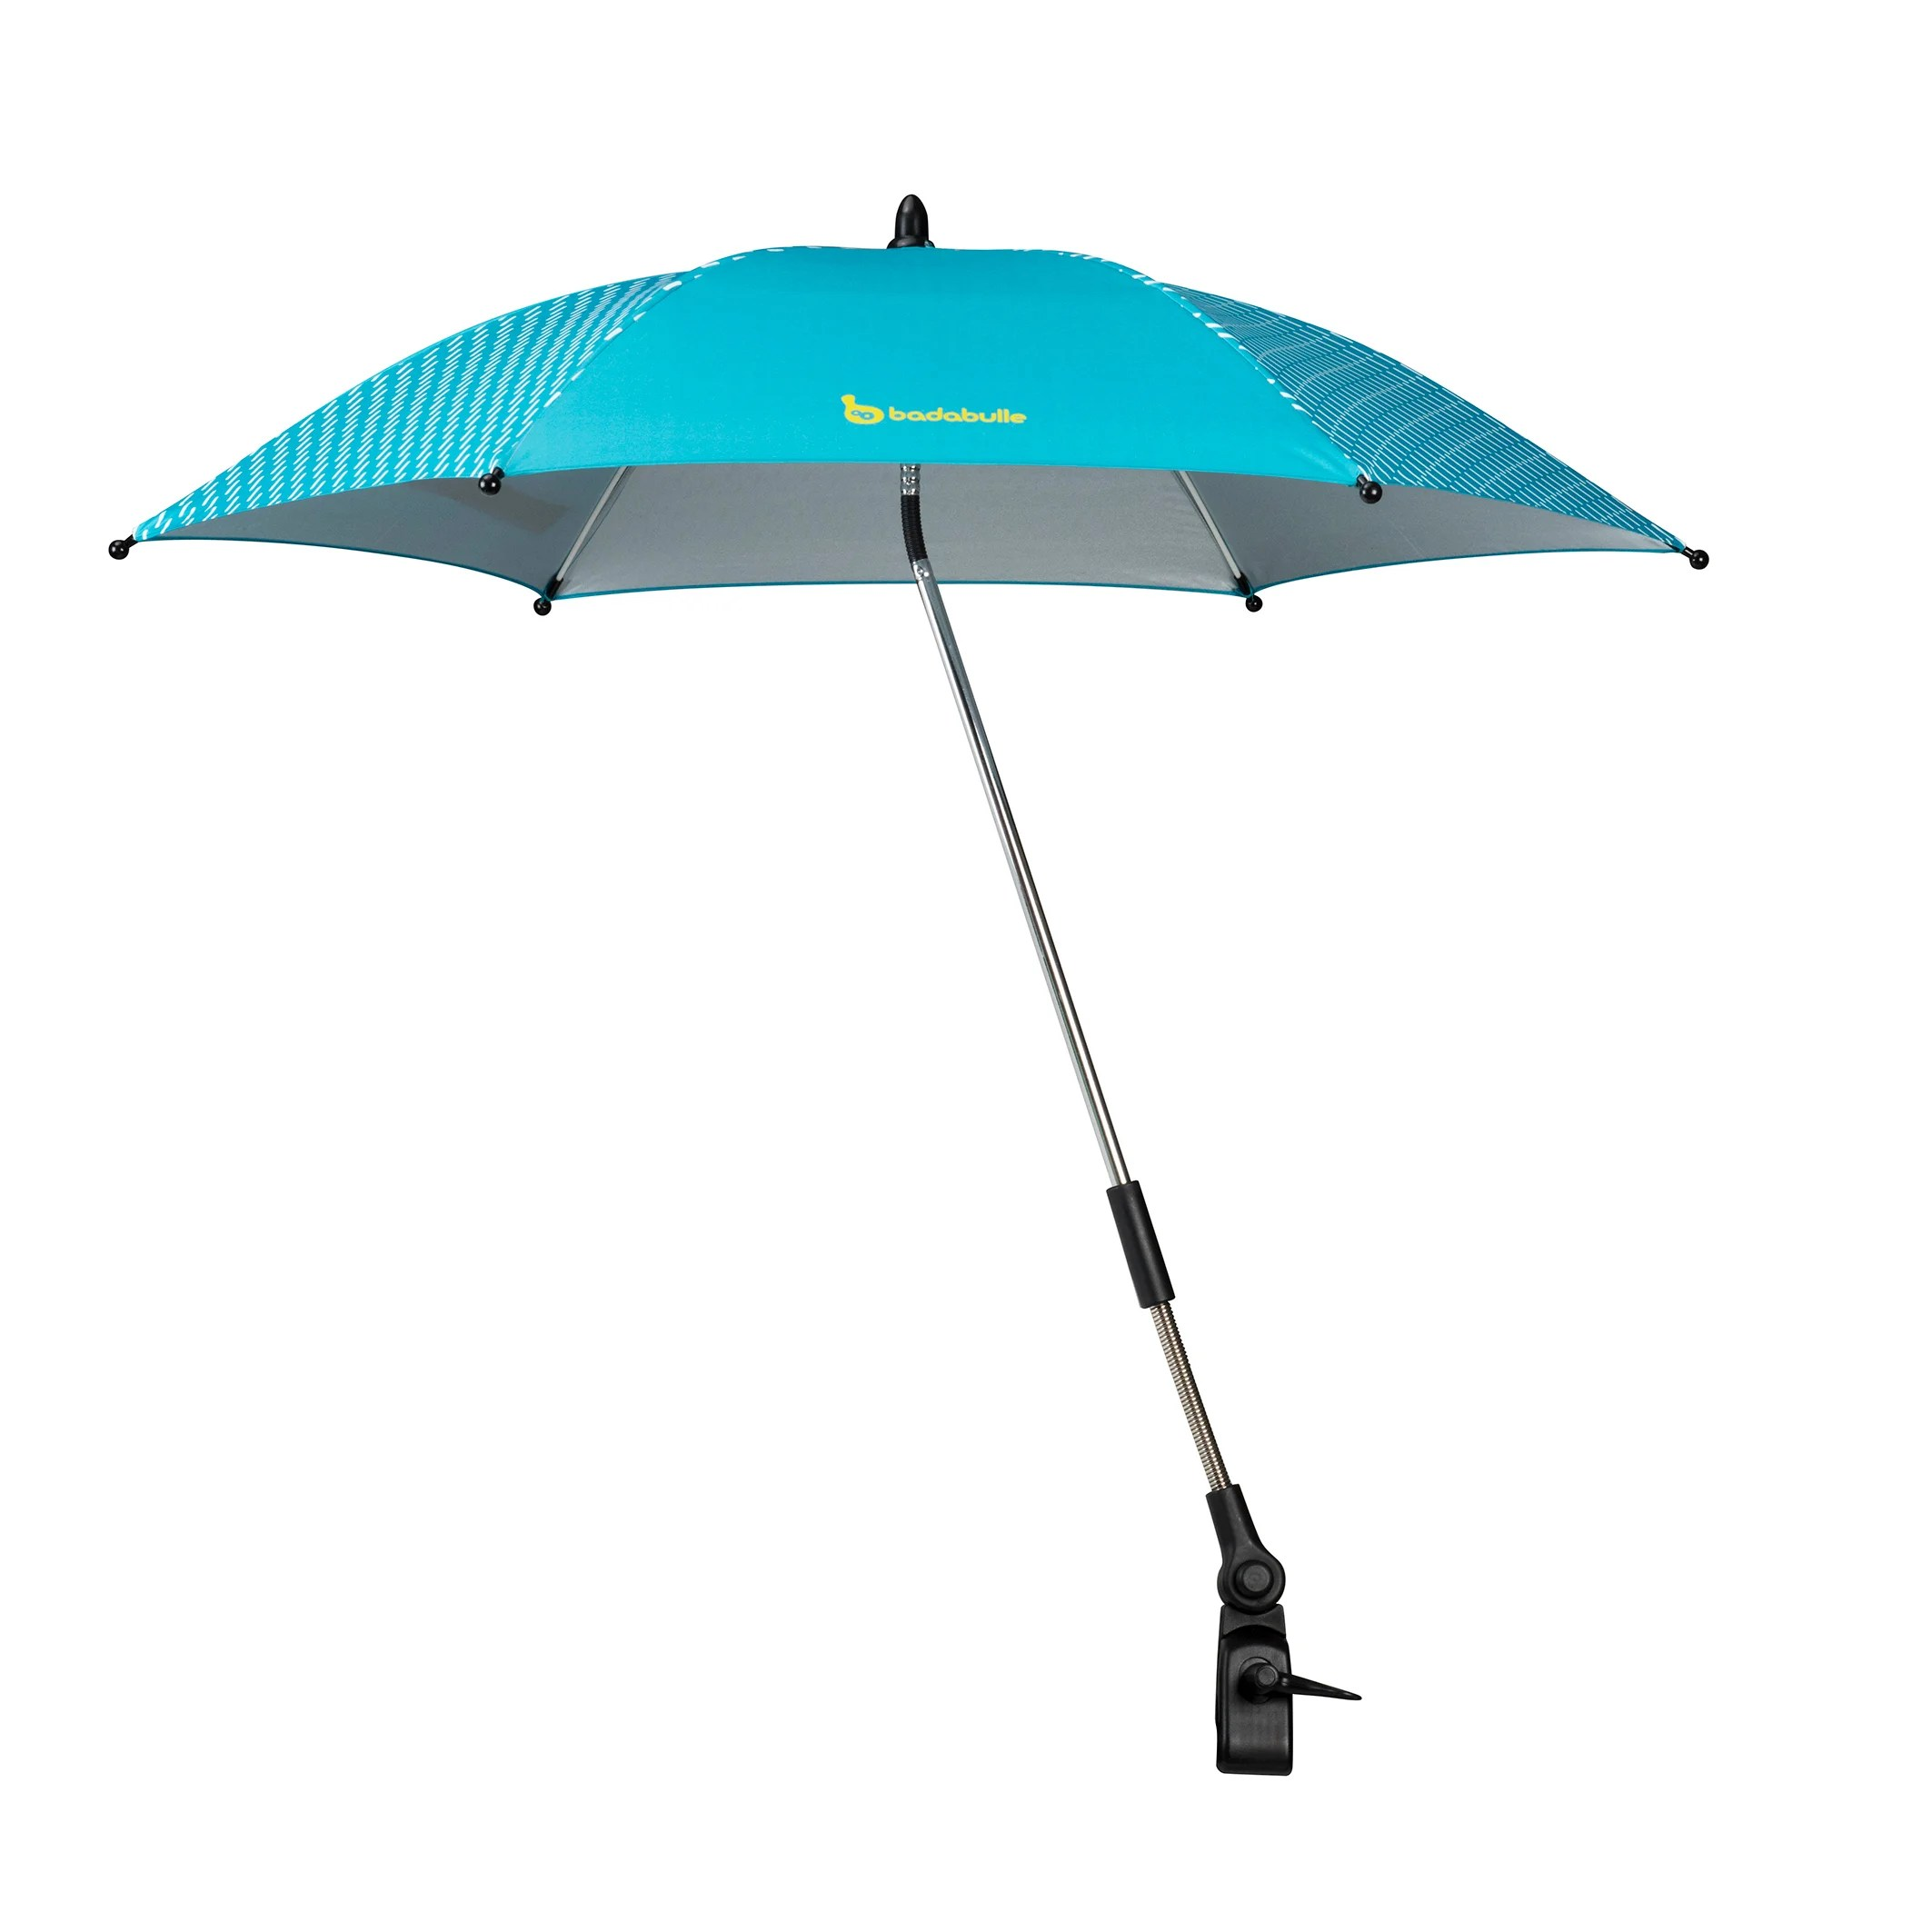 Egg Pram Parasol John Lewis 2 7 Metre Parasol Malibu Blue Outdoor Essentials When